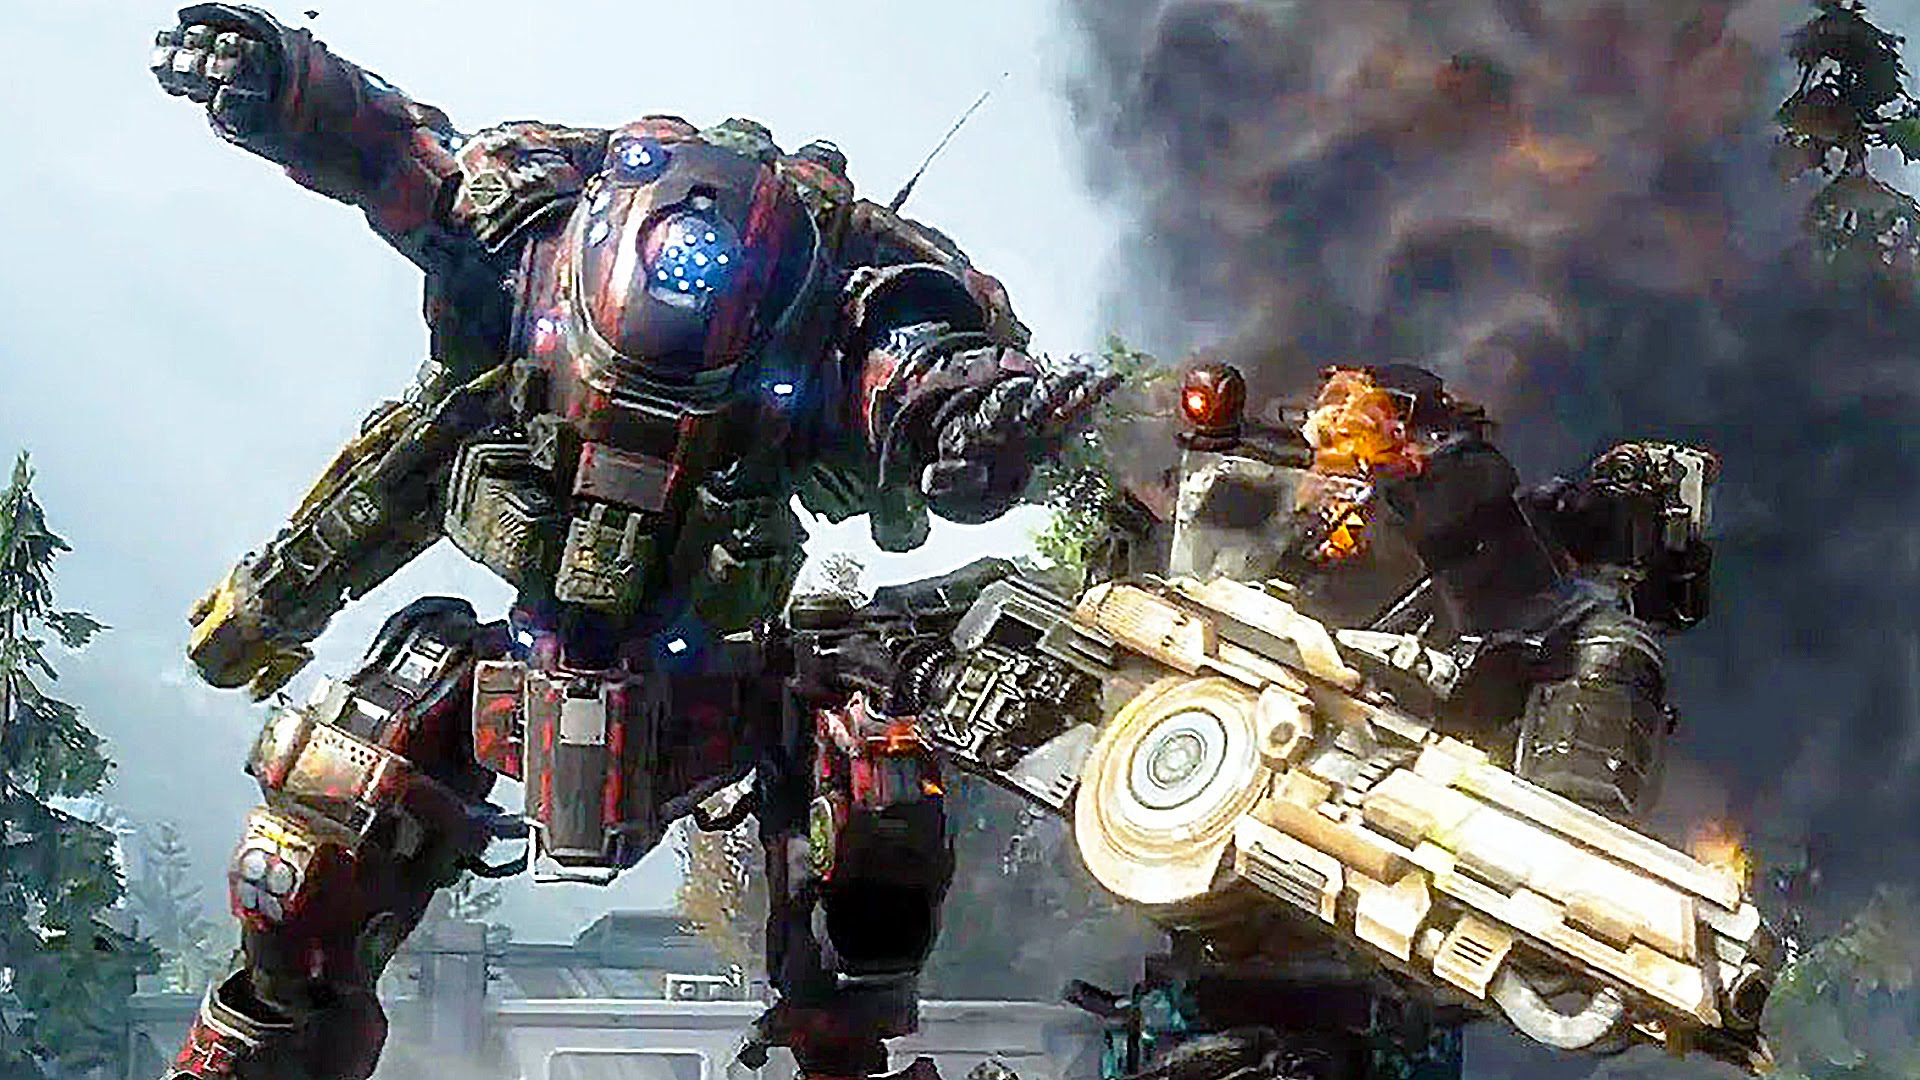 Titanfall 2 Wallpapers High Quality | Download Free